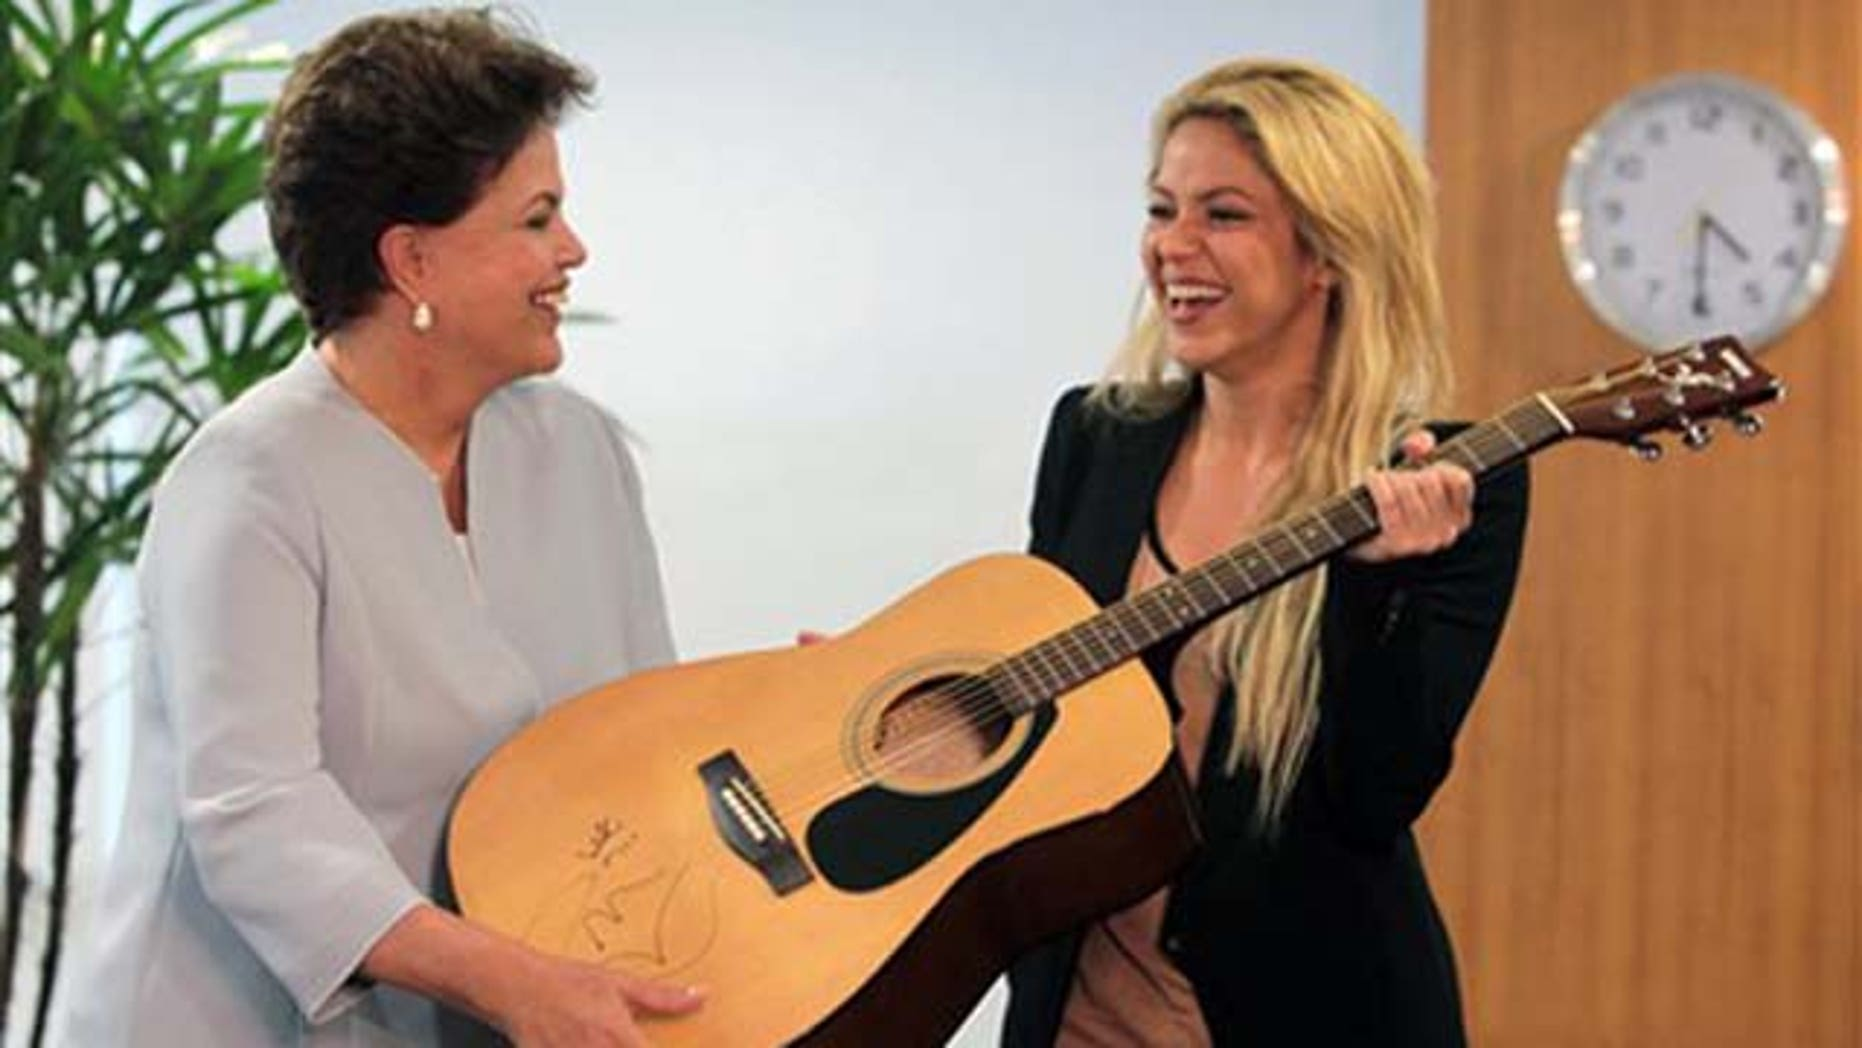 Brazil's President Dilma Rousseff, left, receives an autographed guitar from Colombian singer Shakira at Planalto Palace in Brasilia, Brazil, Thursday March 17, 2011. (AP Photo/Eraldo Peres)